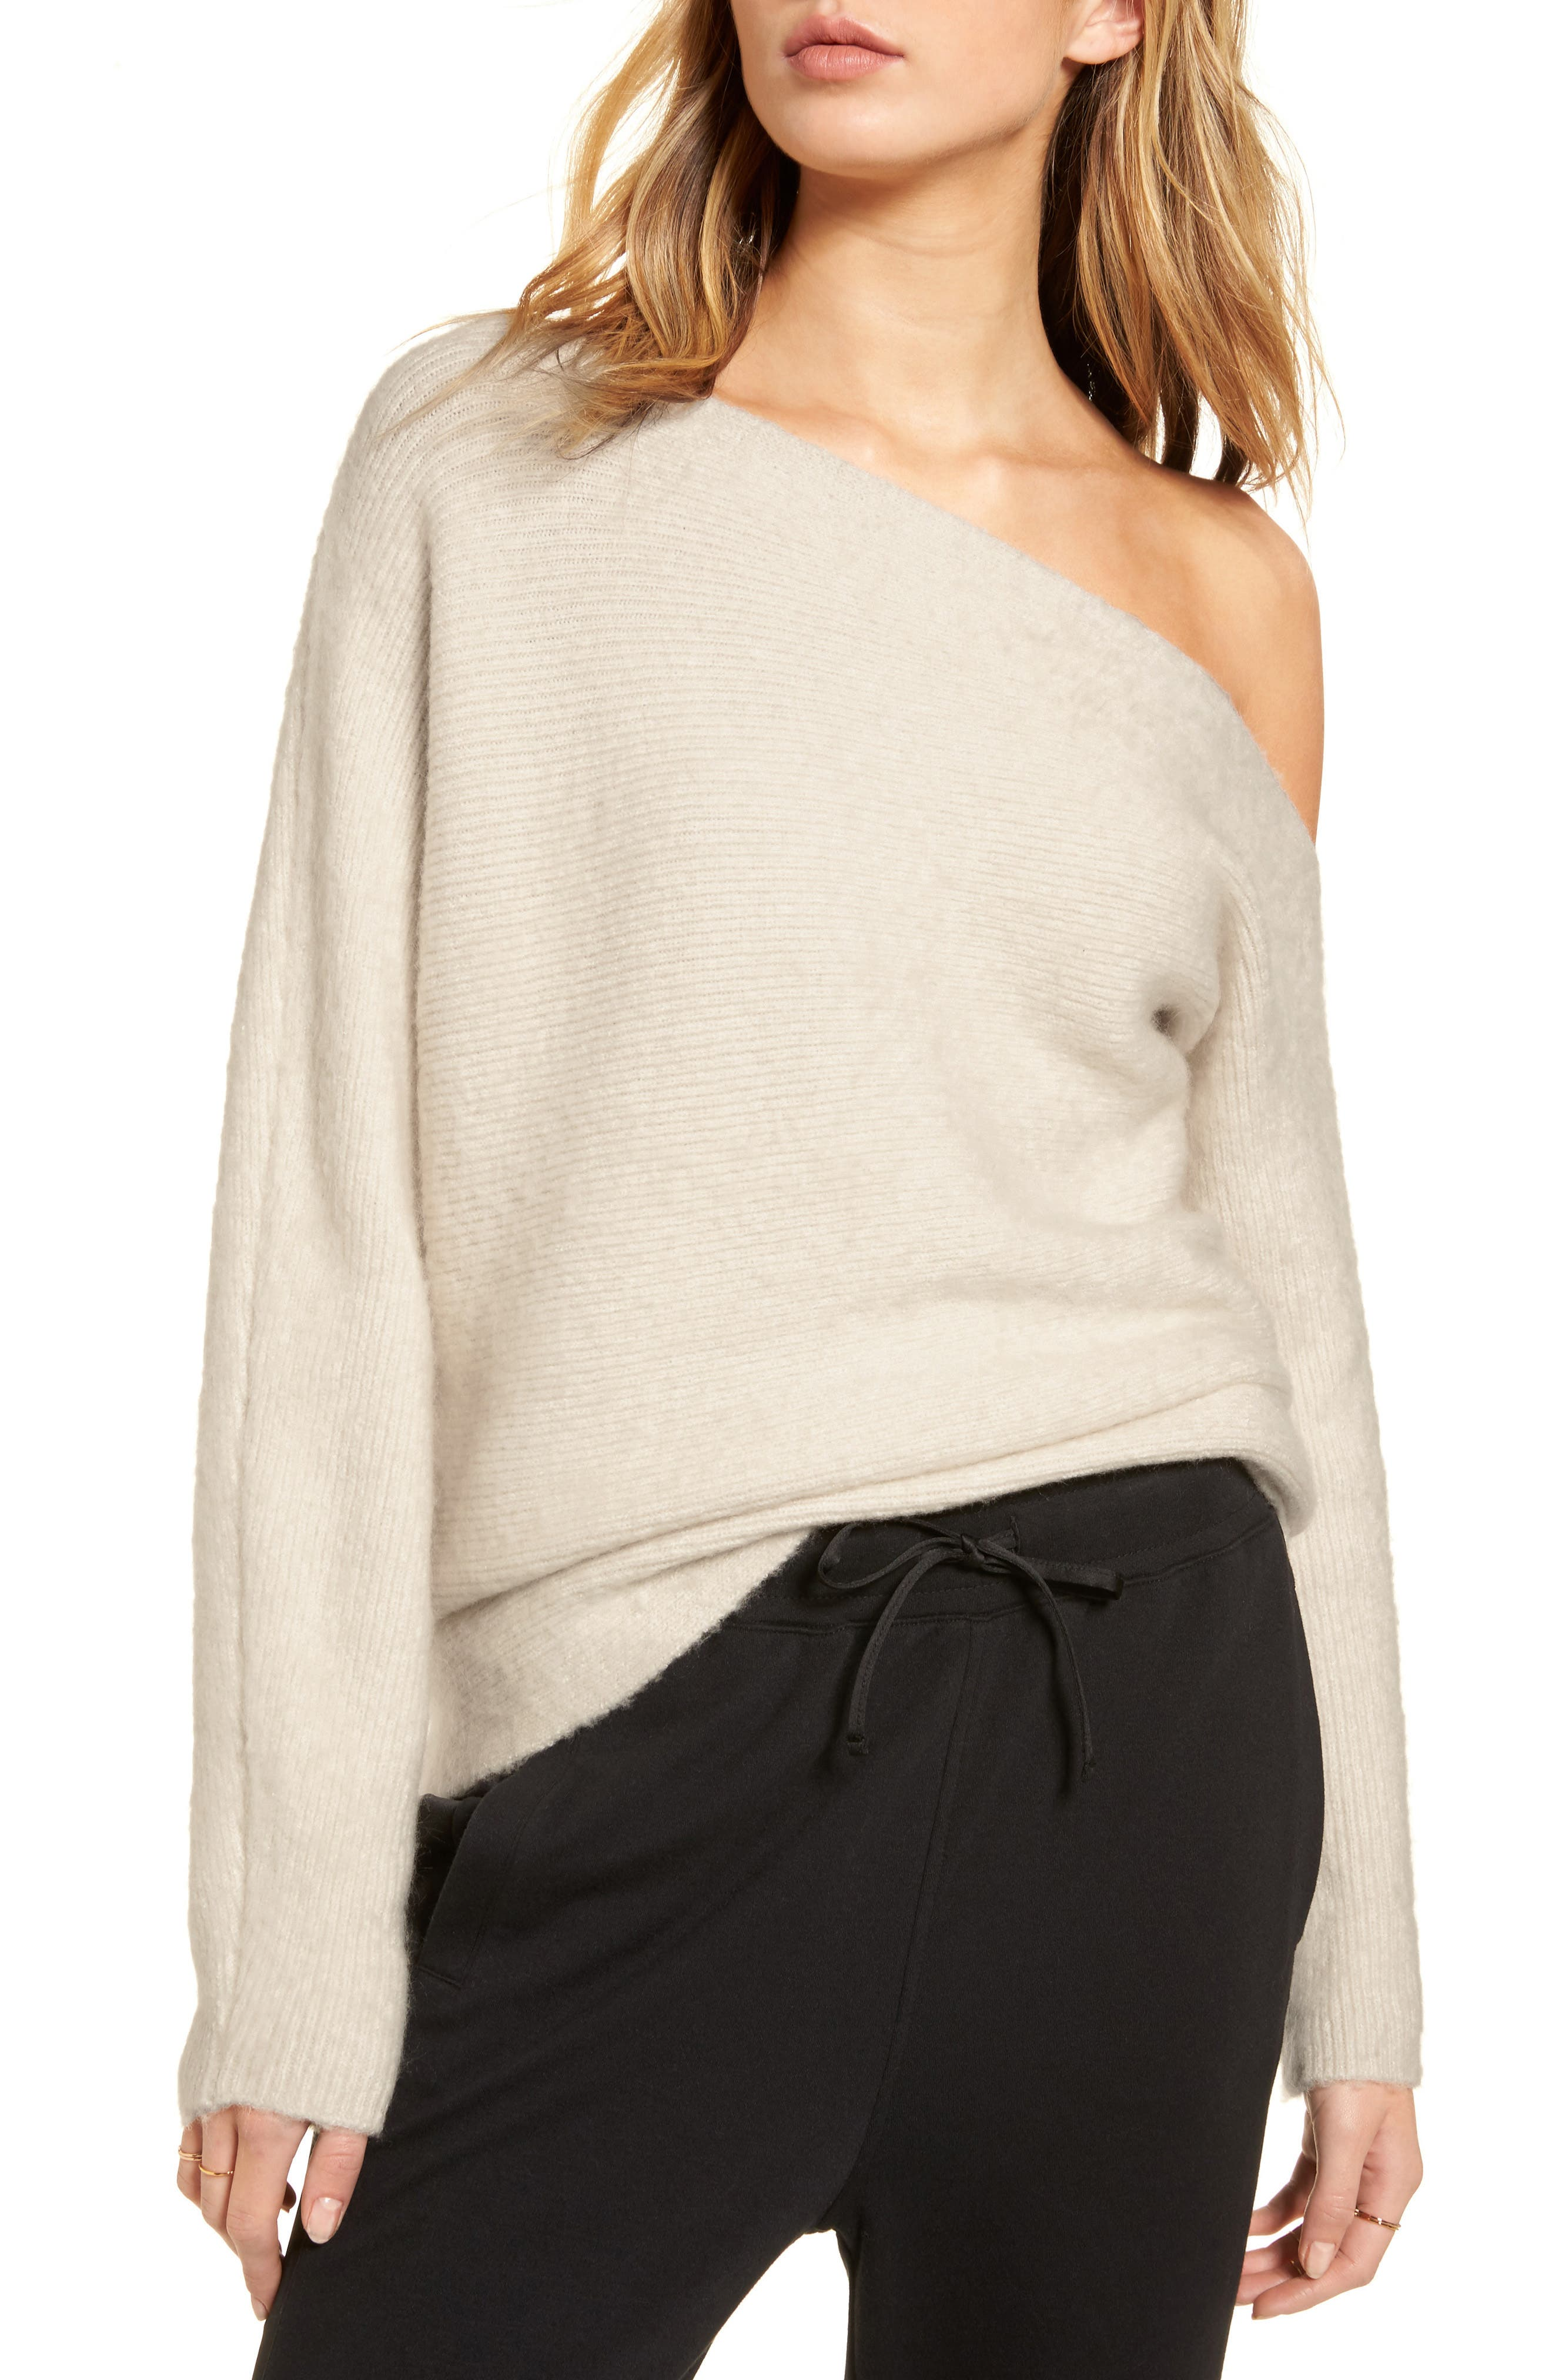 TREASURE & BOND One-Shoulder Ribbed Sweater, Main, color, BEIGE OATMEAL LIGHT HEATHER